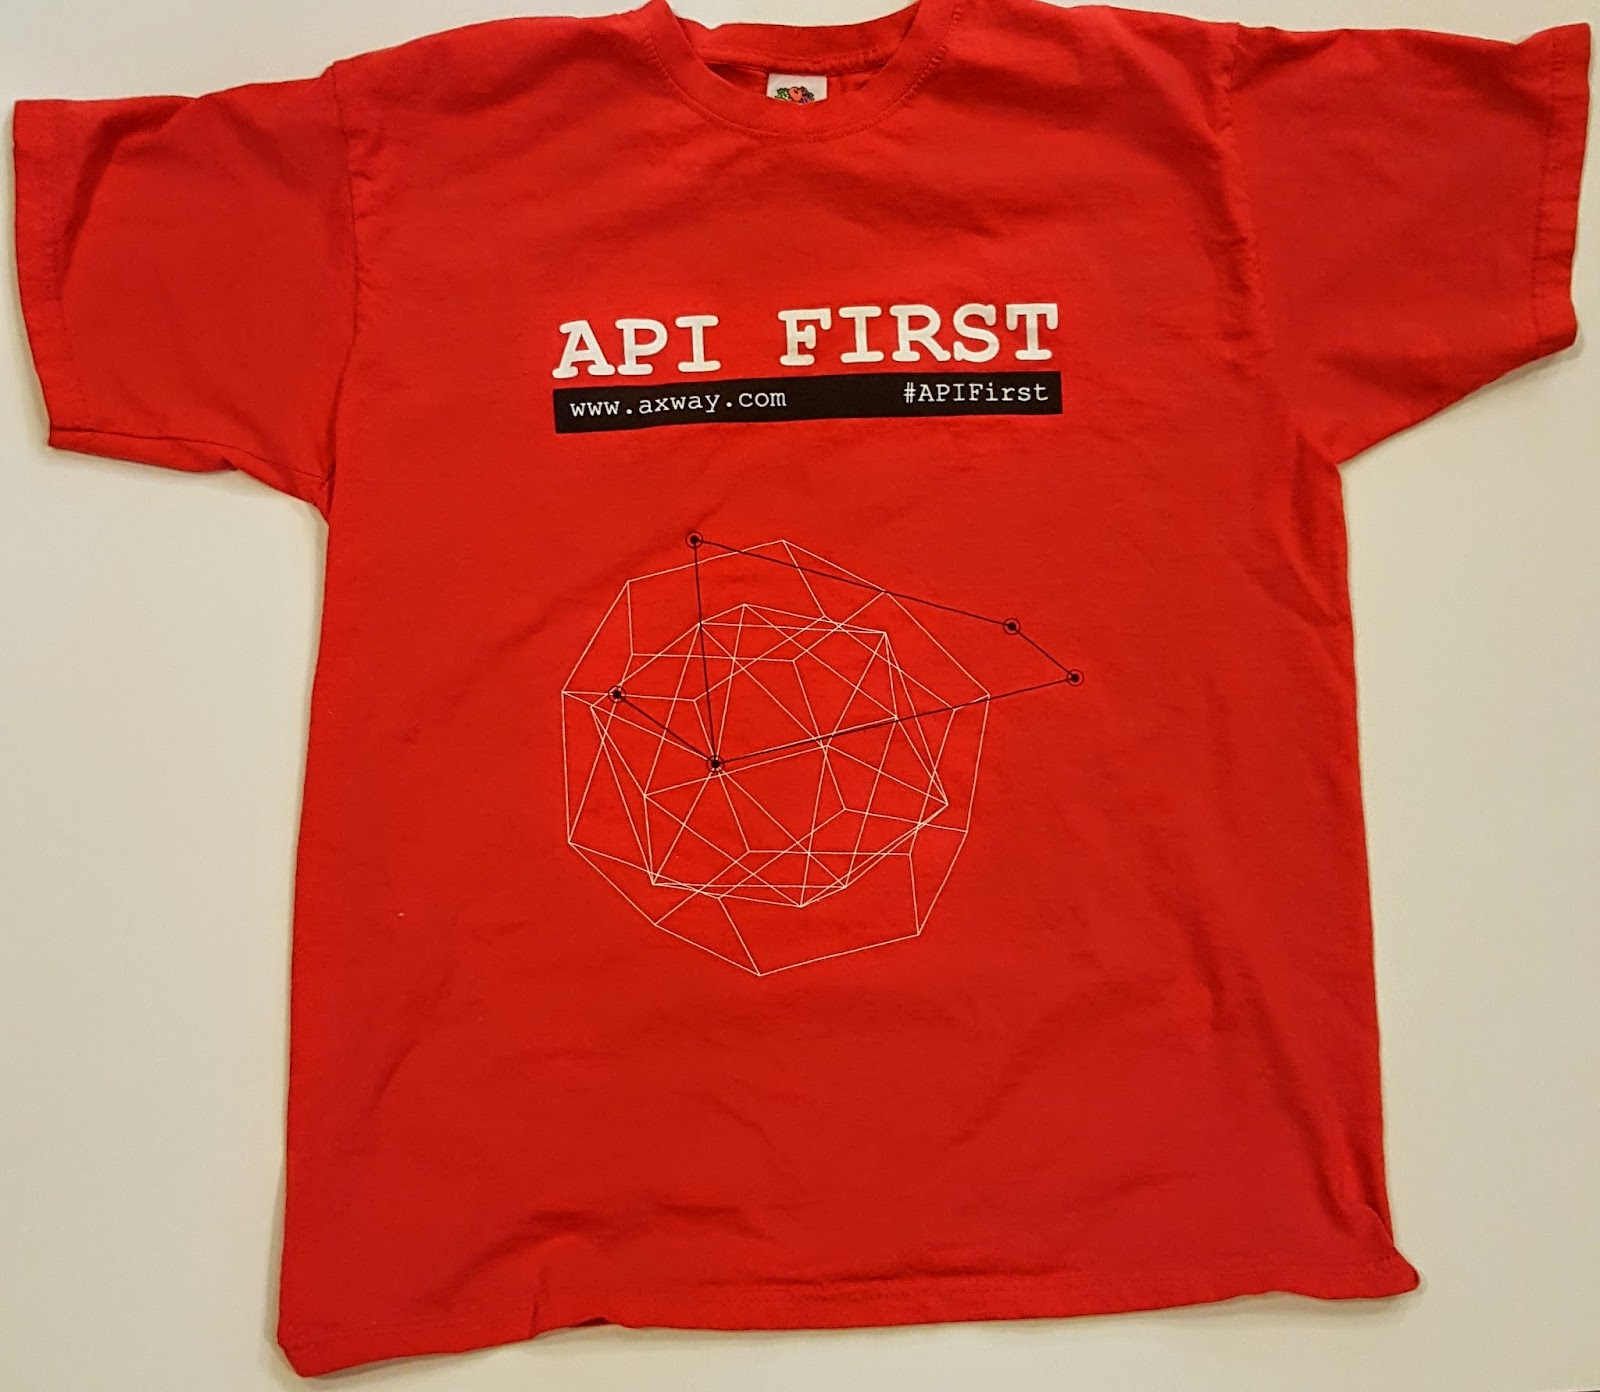 API FIRST T-SHIRT